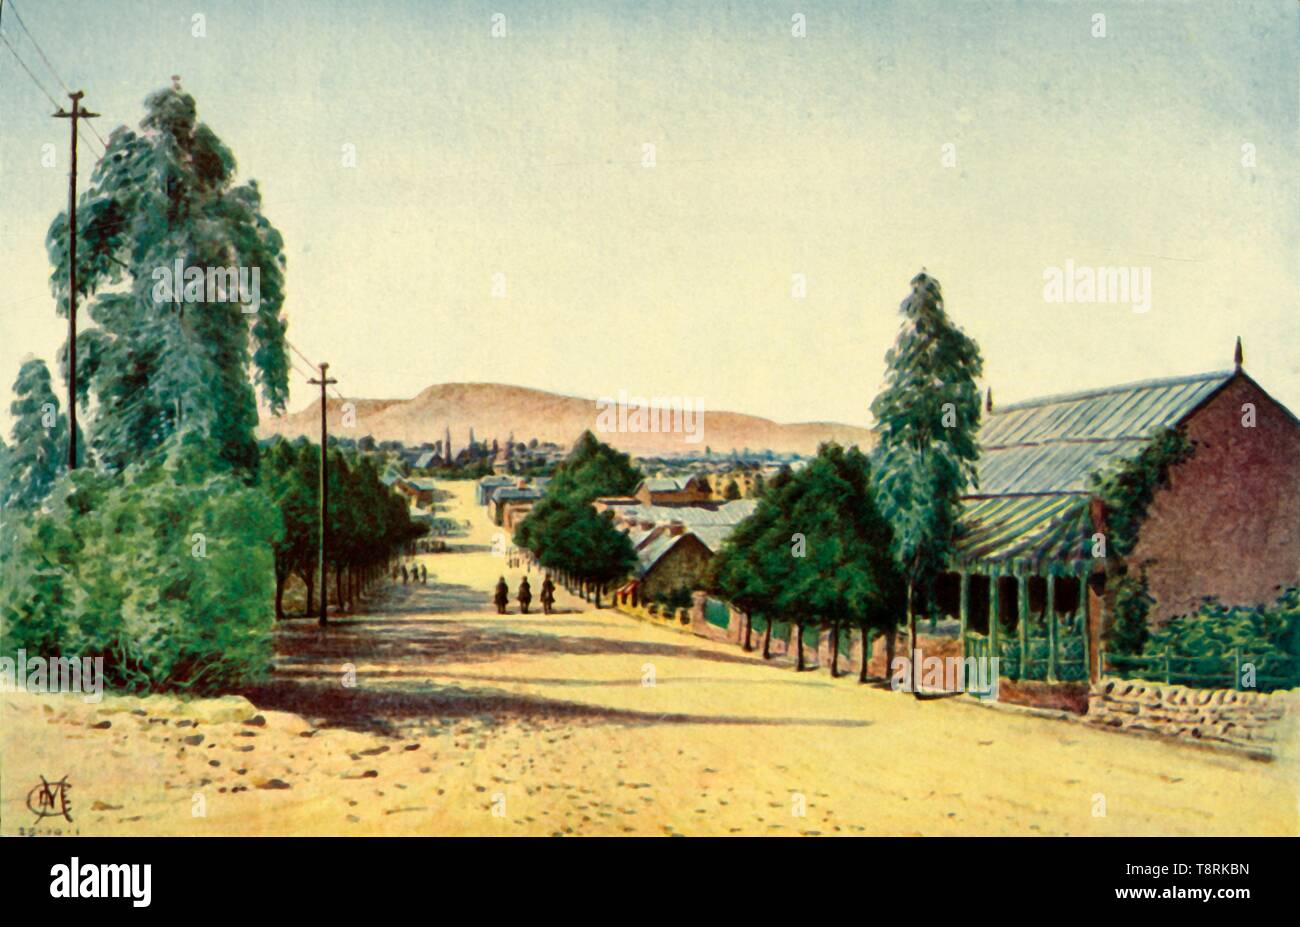 """'Bloemfontein', 1901. The town of Bloemfontein, capital of the Orange Free State, an independent Boer sovereign republic until 1902, and now part of South Africa. From """"The Life and Deeds of Earl Roberts, Vol. IV. - To Lord Roberts's Reign in Pall Mall"""", by J. Maclaren Cobban. [T. C. & E. C. Jack, Edinburgh, 1901] Stock Photo"""